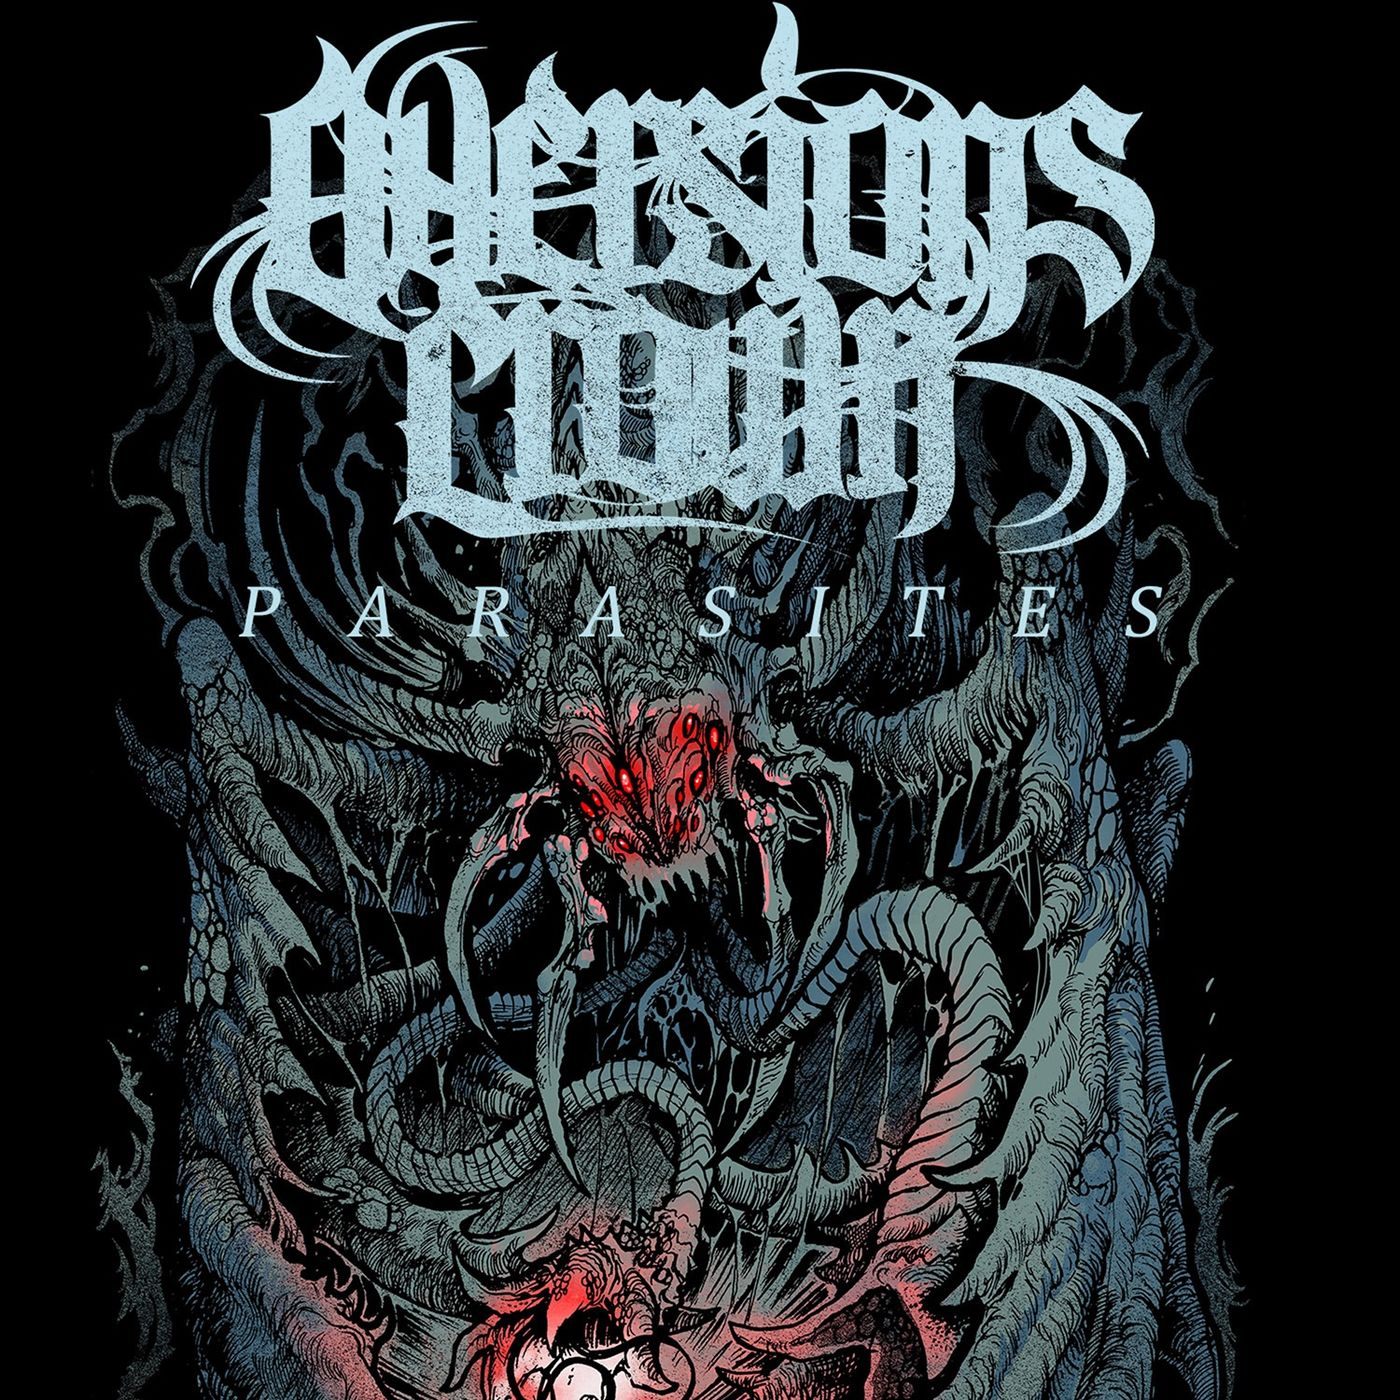 Aversions Crown – Parasites (Single) (2015)